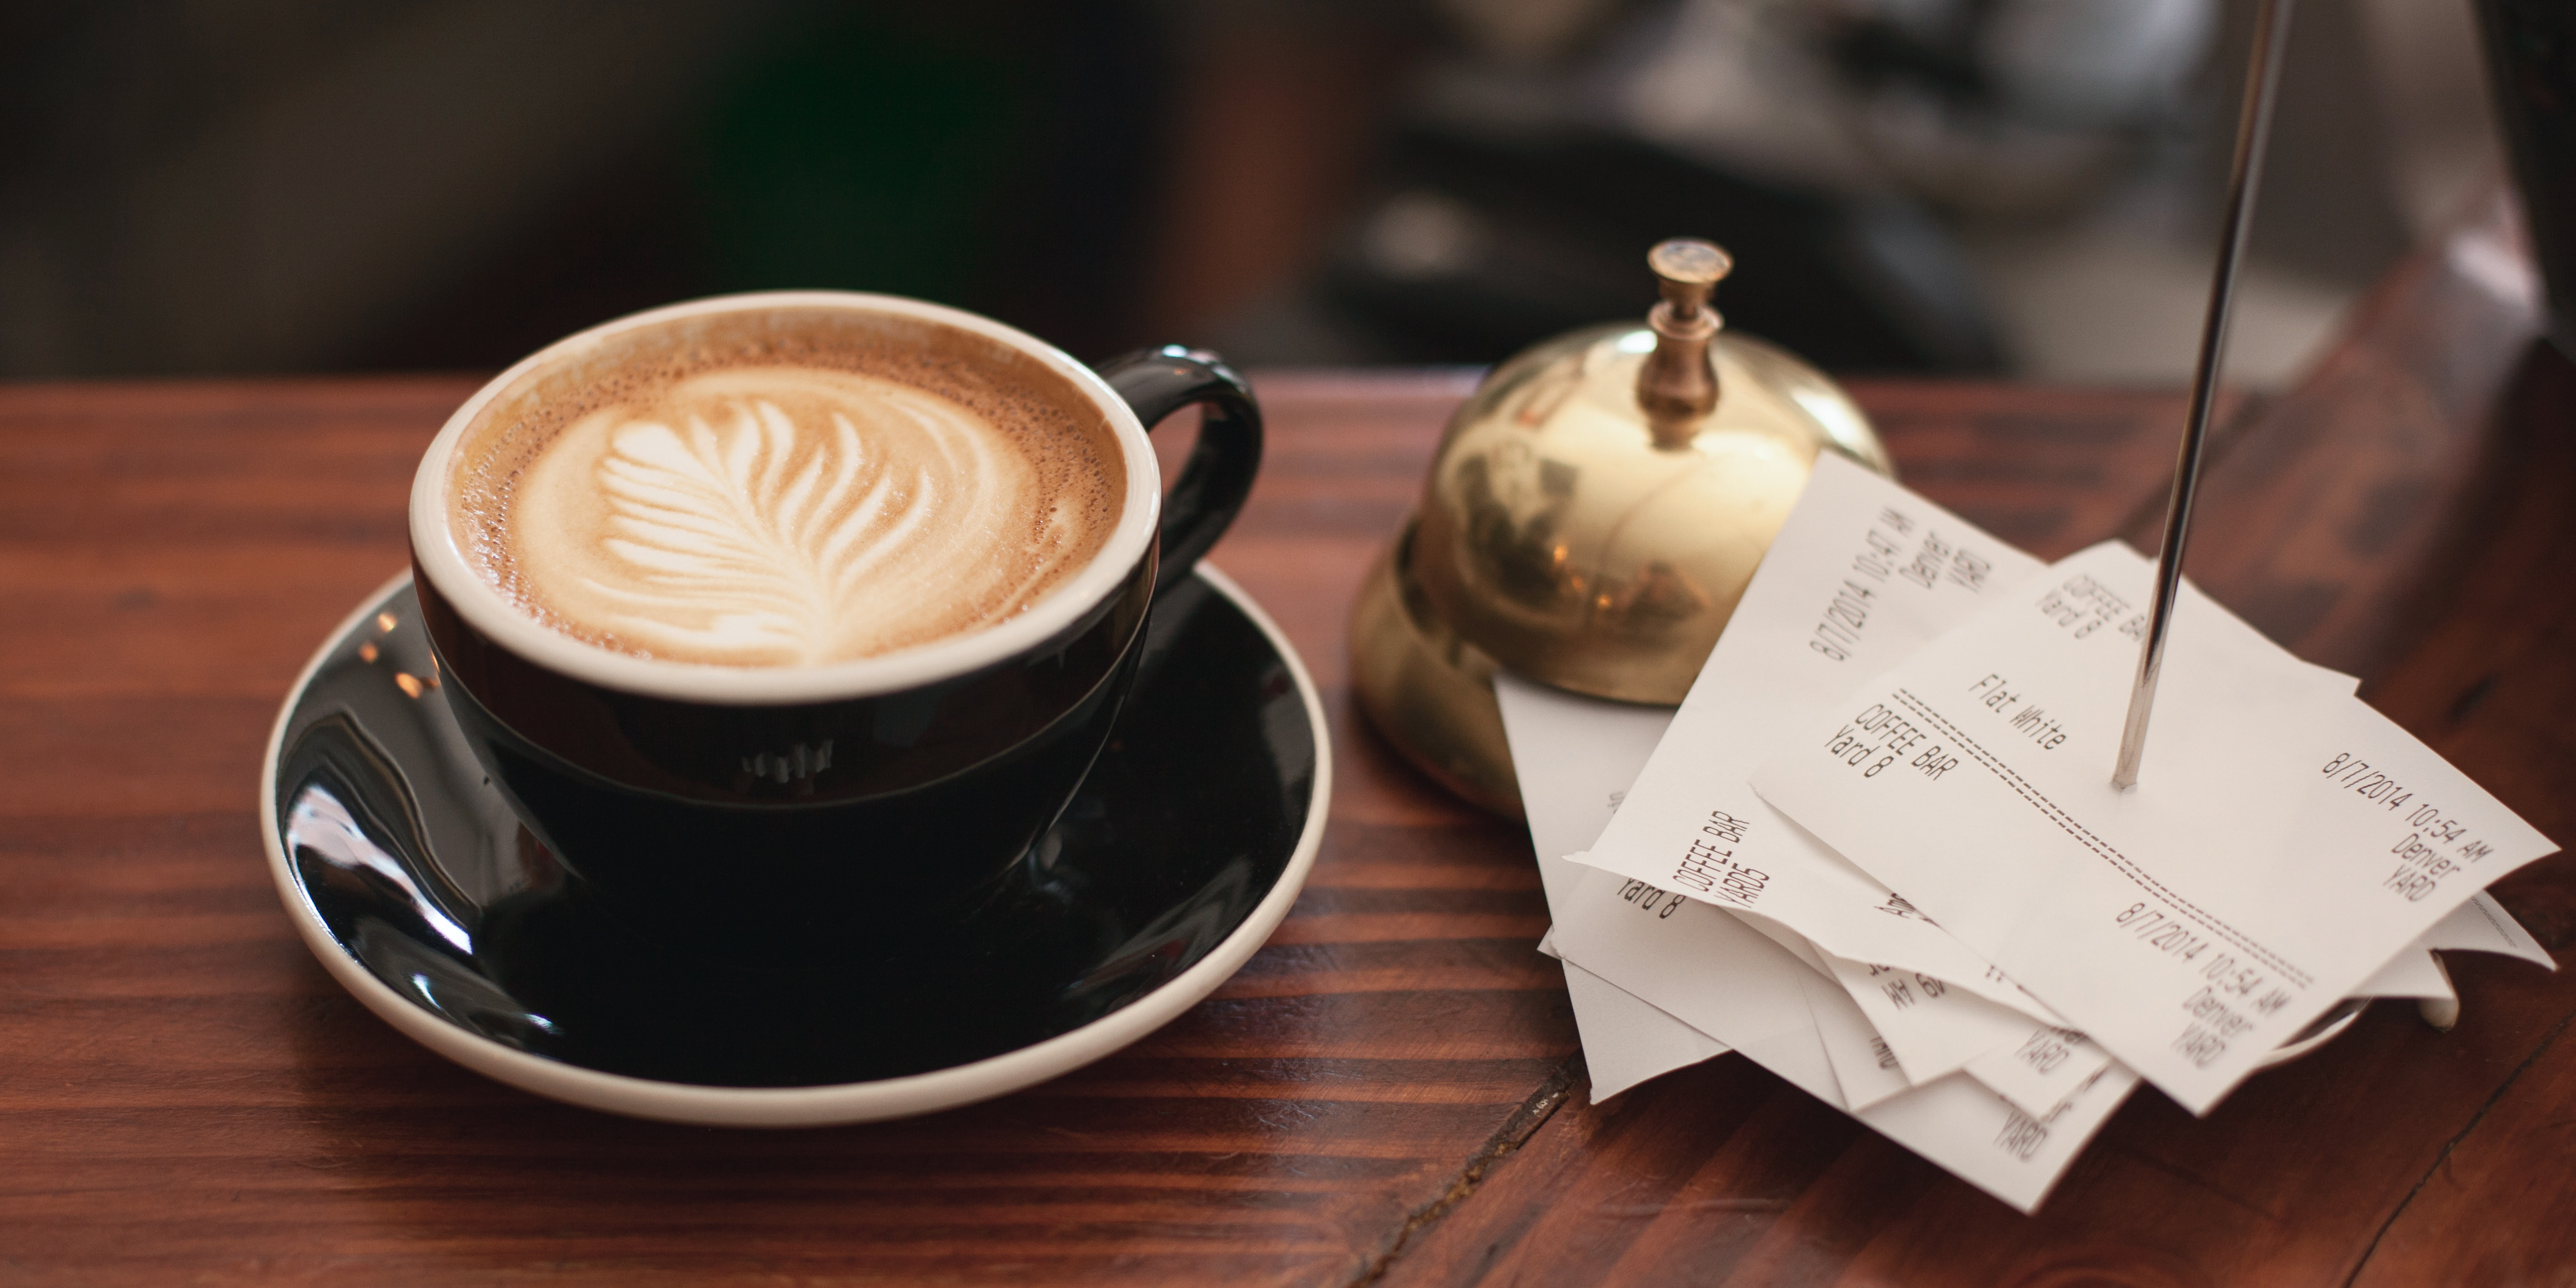 Coffee receipt as proof of purchase